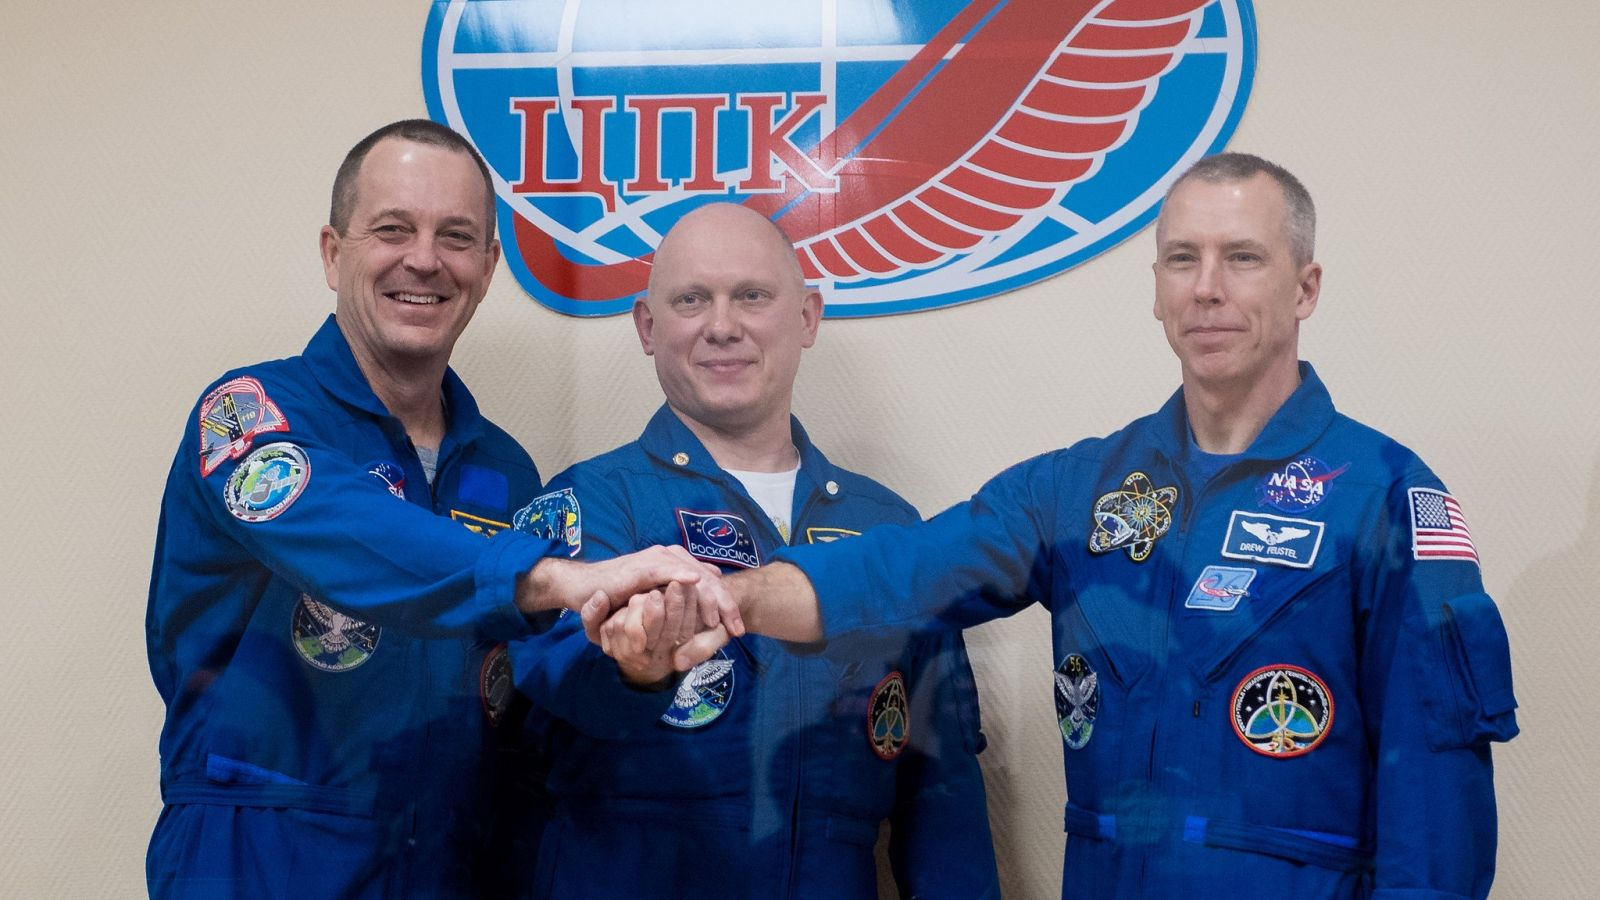 The Soyuz MS-08 crew poses for a picture. NASA's Ricky Arnold, left, Russia's Oleg Artemyev, center, and NASA's Drew Feustel are set to launch to the International Space Station on March 21, 2018. Photo Credit: Joel Kowsky / NASA